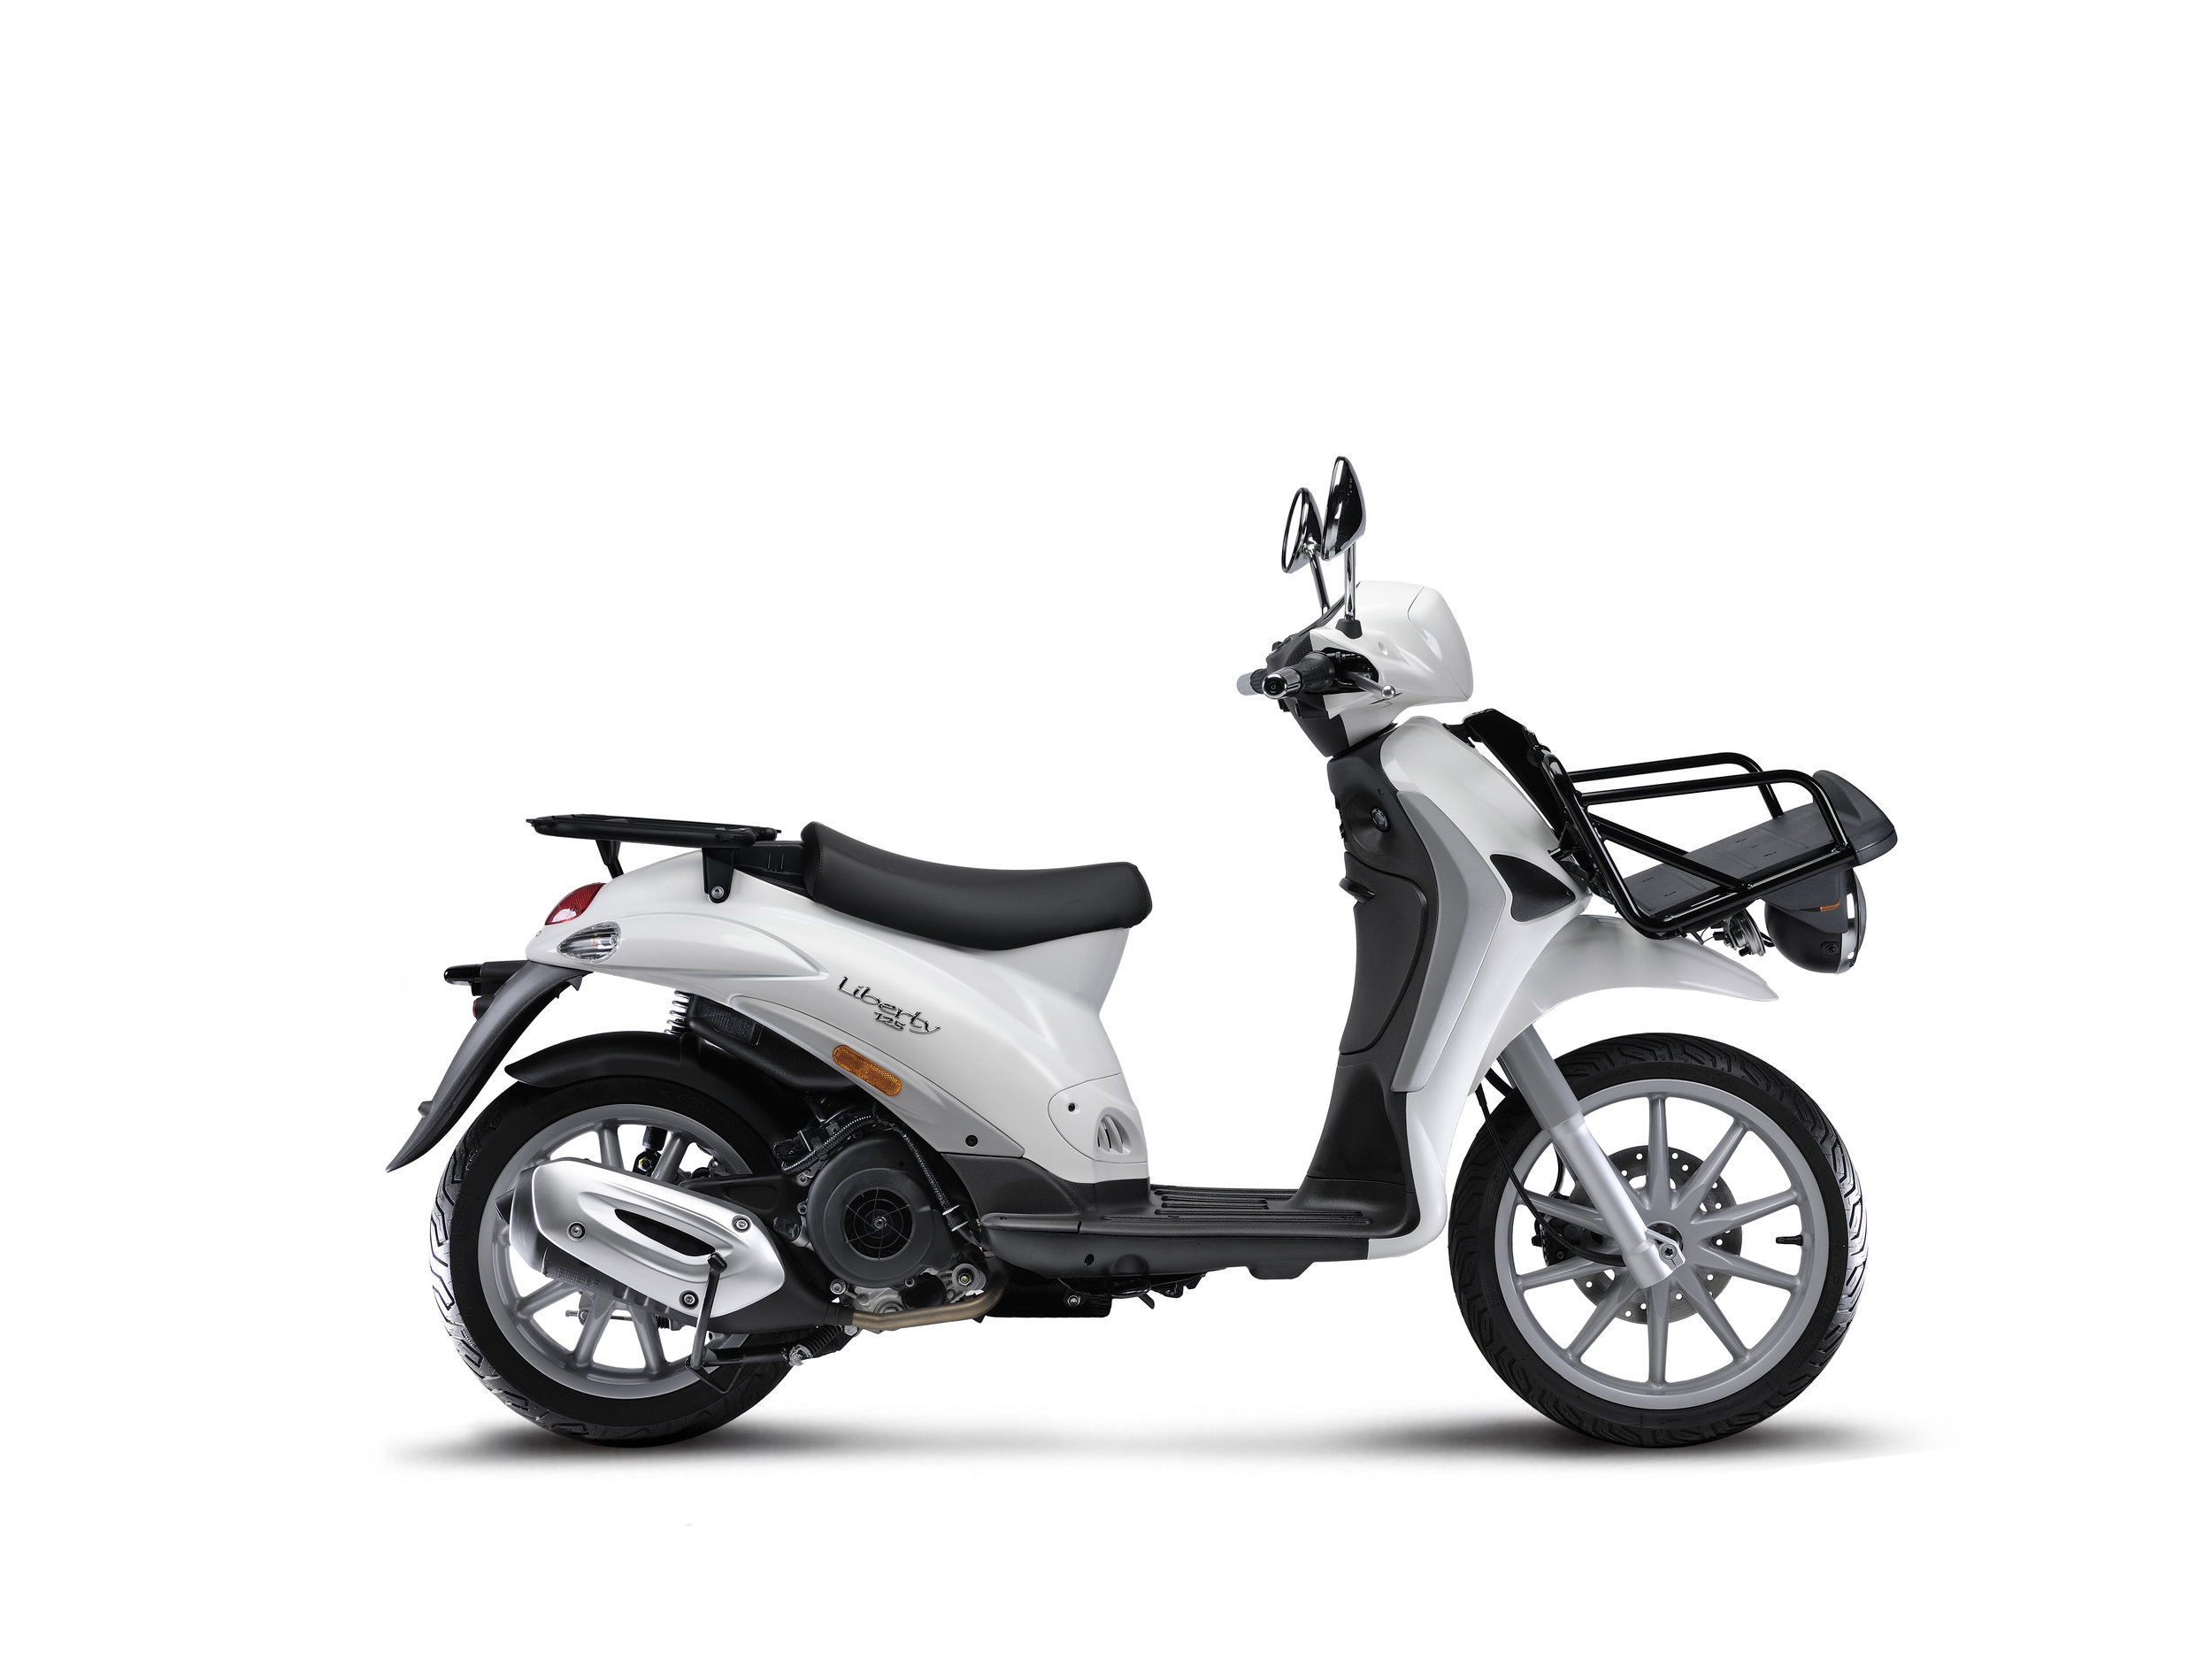 Piaggio Liberty delivery 125 Side Dx Double Rack.jpg